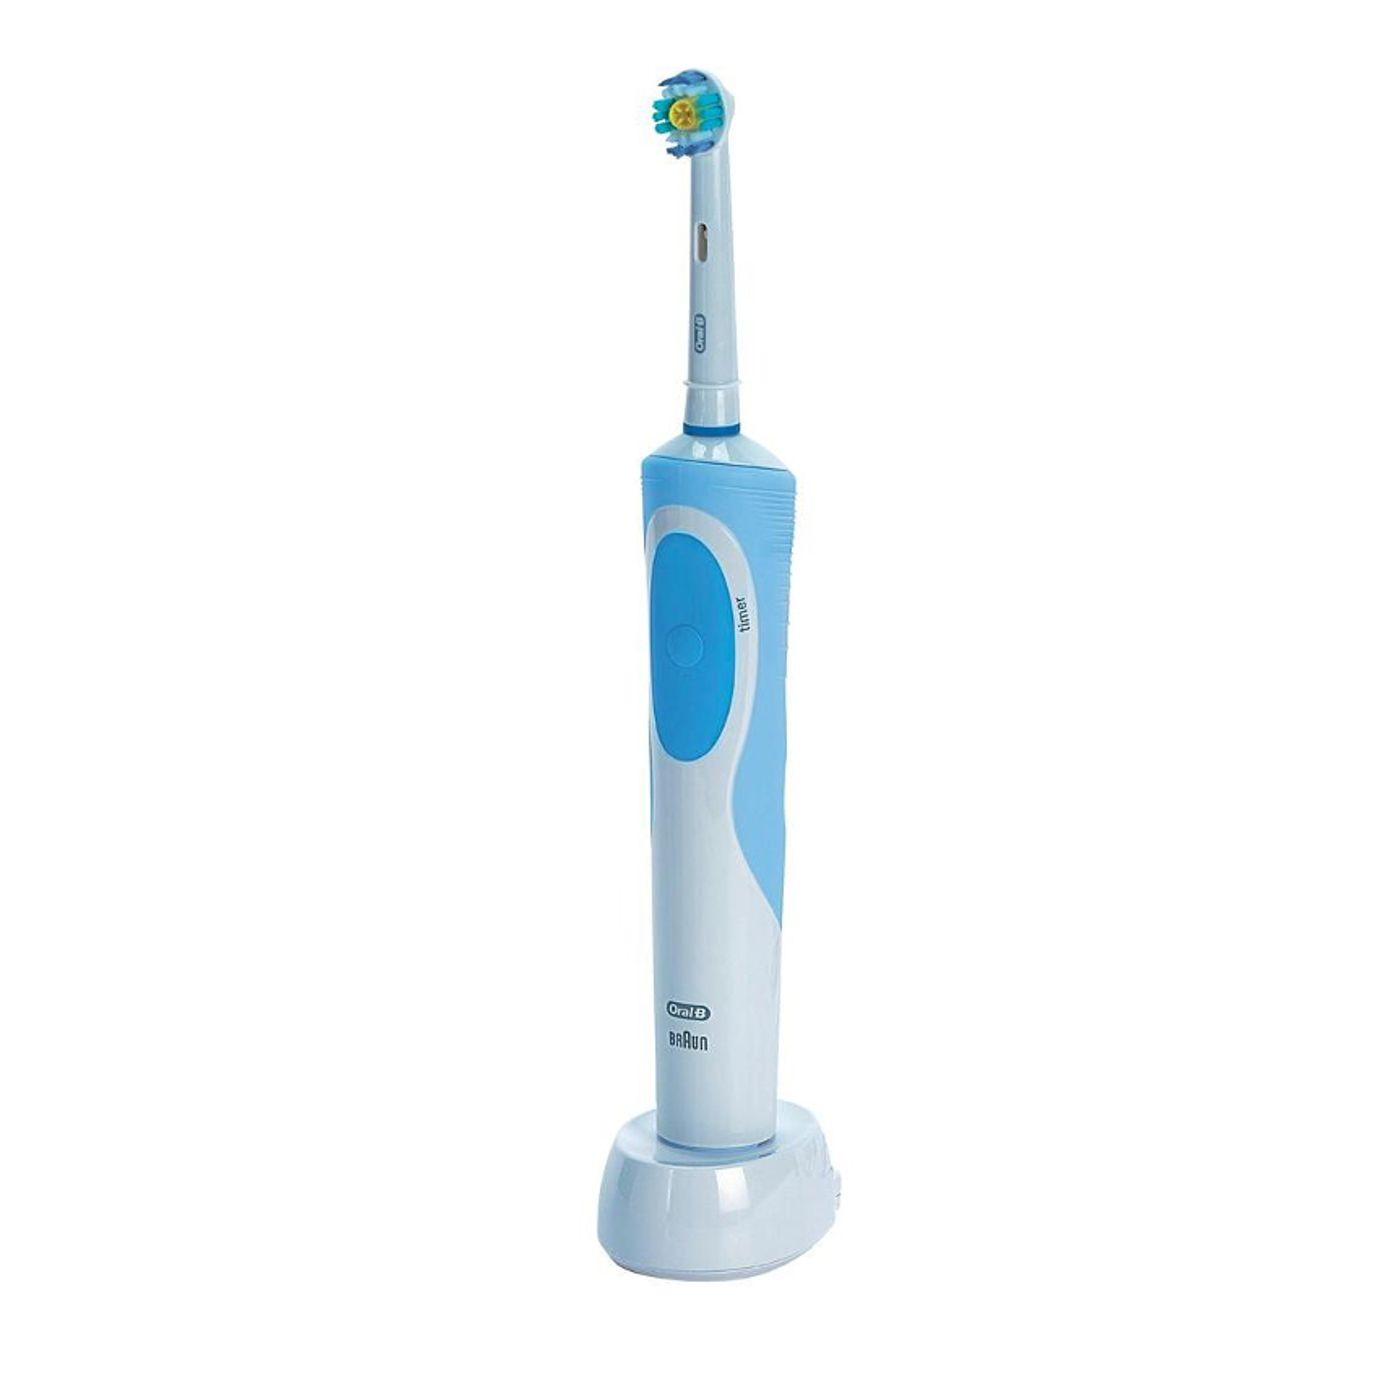 Oral b braun electric toothbrush with images dental